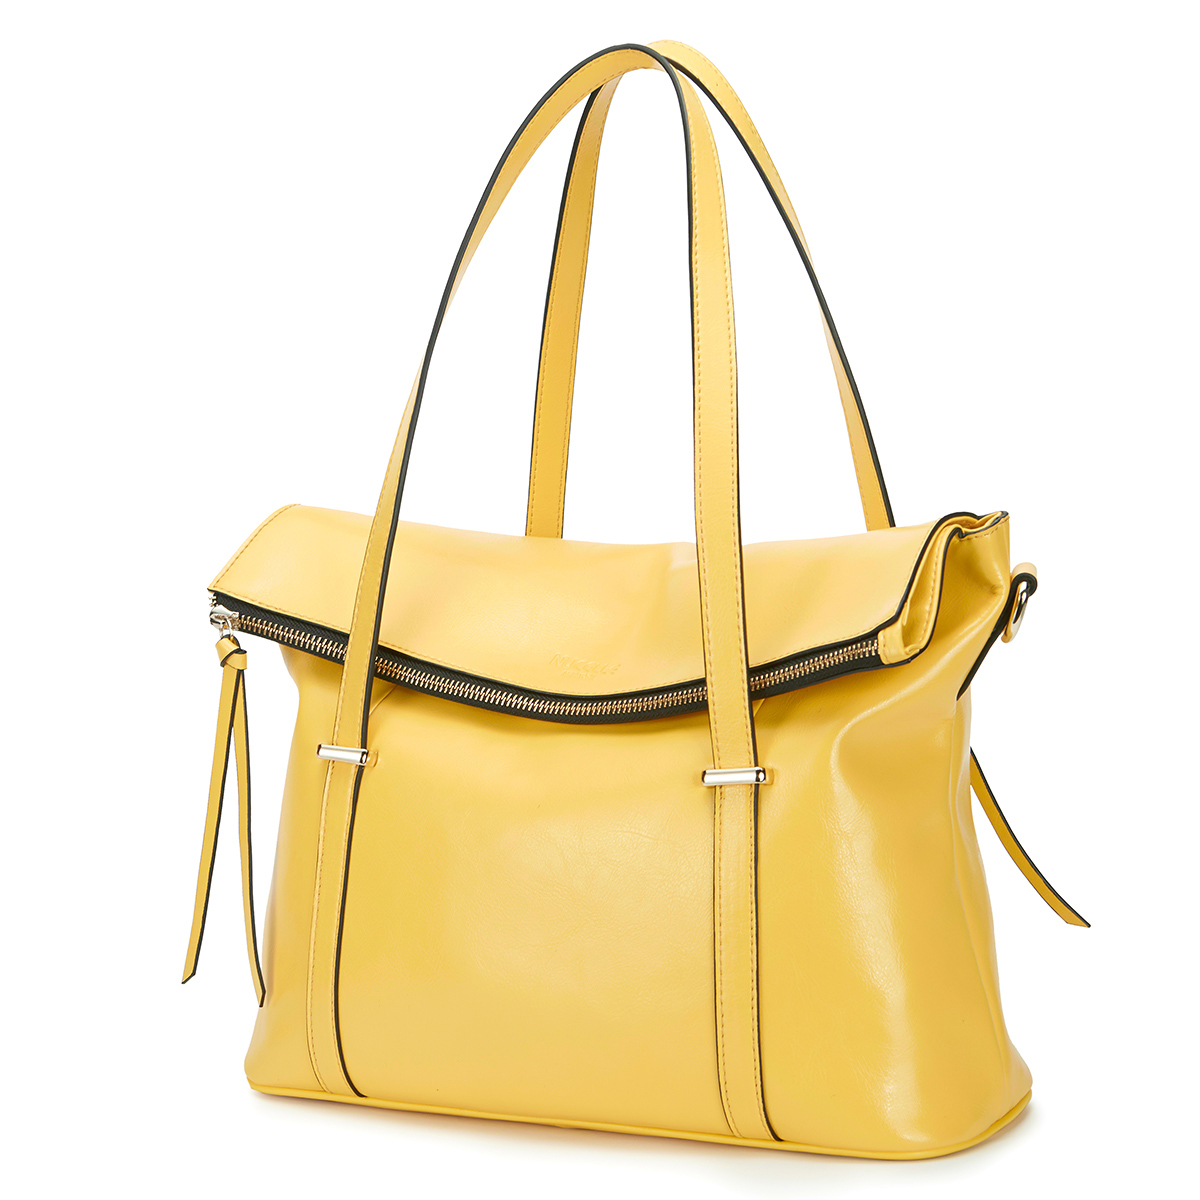 Vercation big size NUCELLE leather Tote bag Yellow - See more at: http://www.bagtreeok.com/goods-7205.html#sthash.c6mNPfrf.dpuf